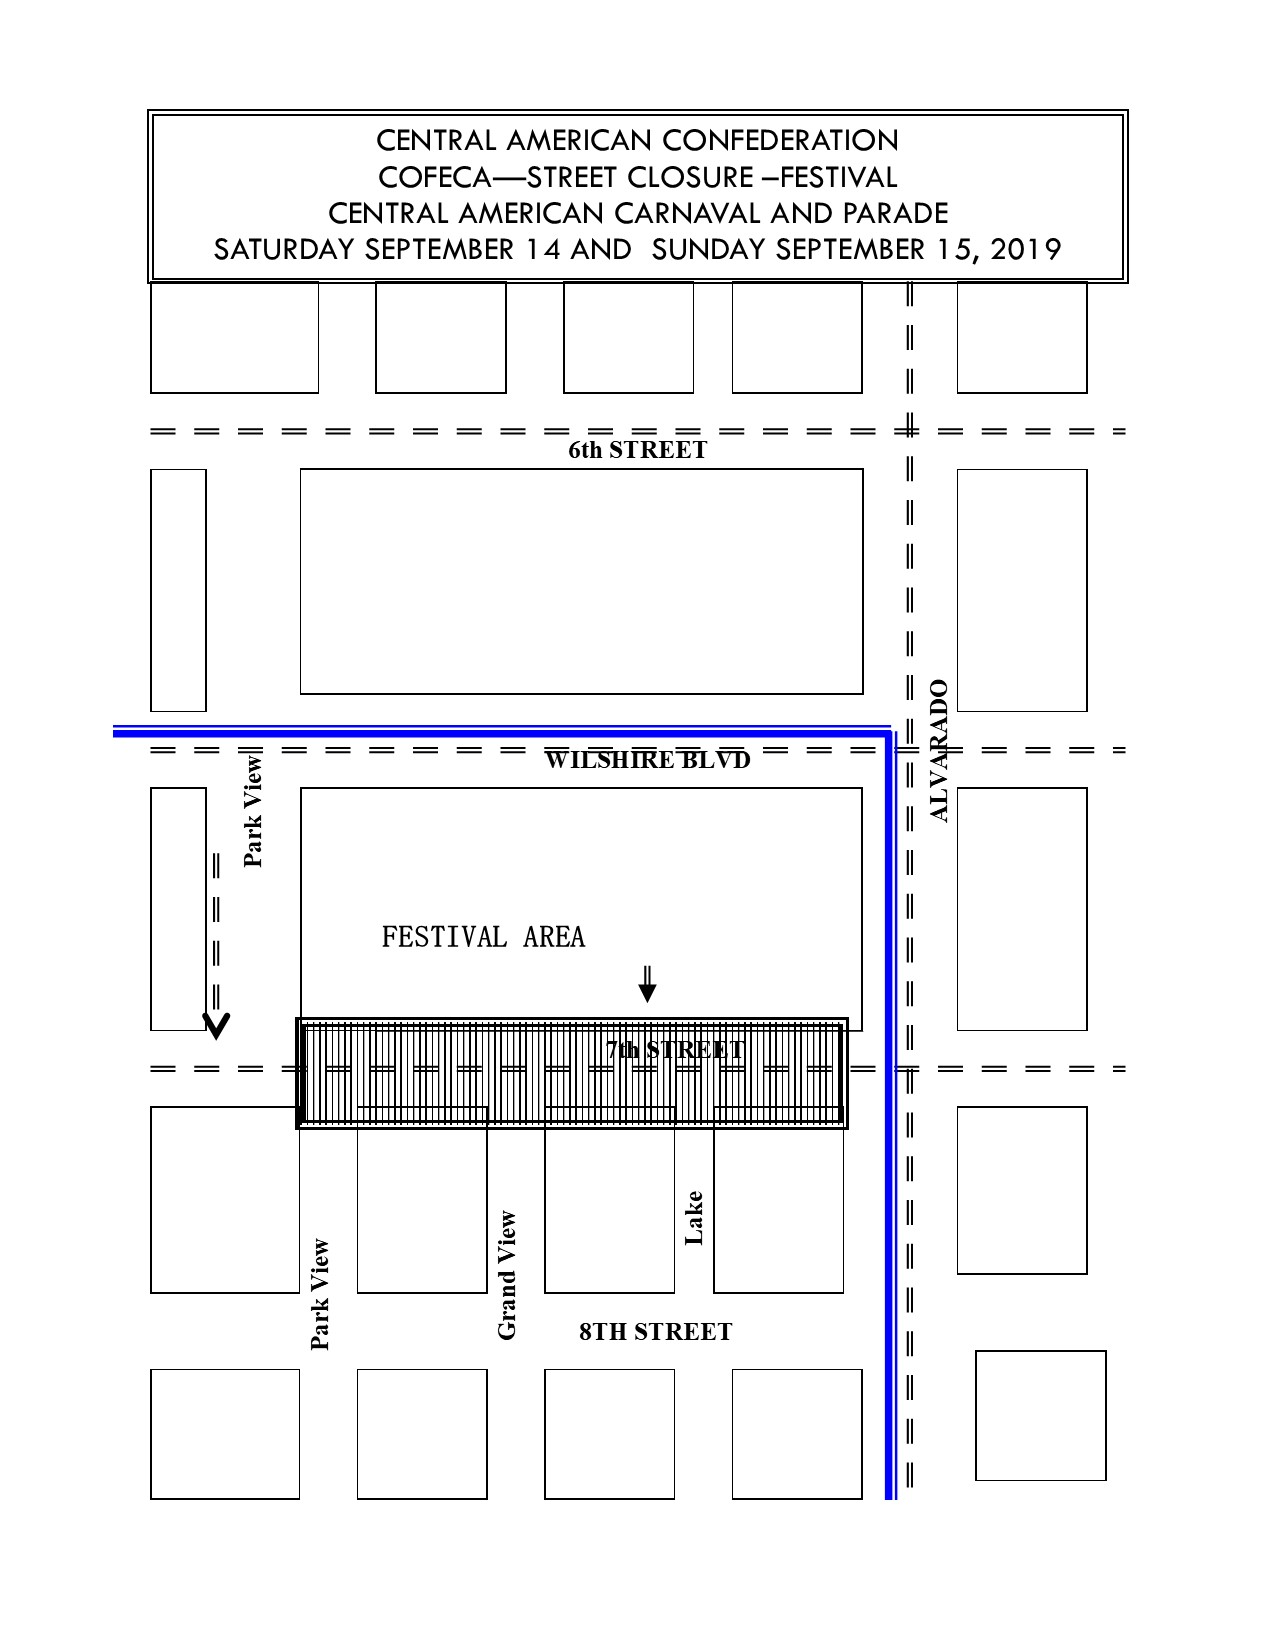 COFECA - STREET CLOSURE 2019.jpg